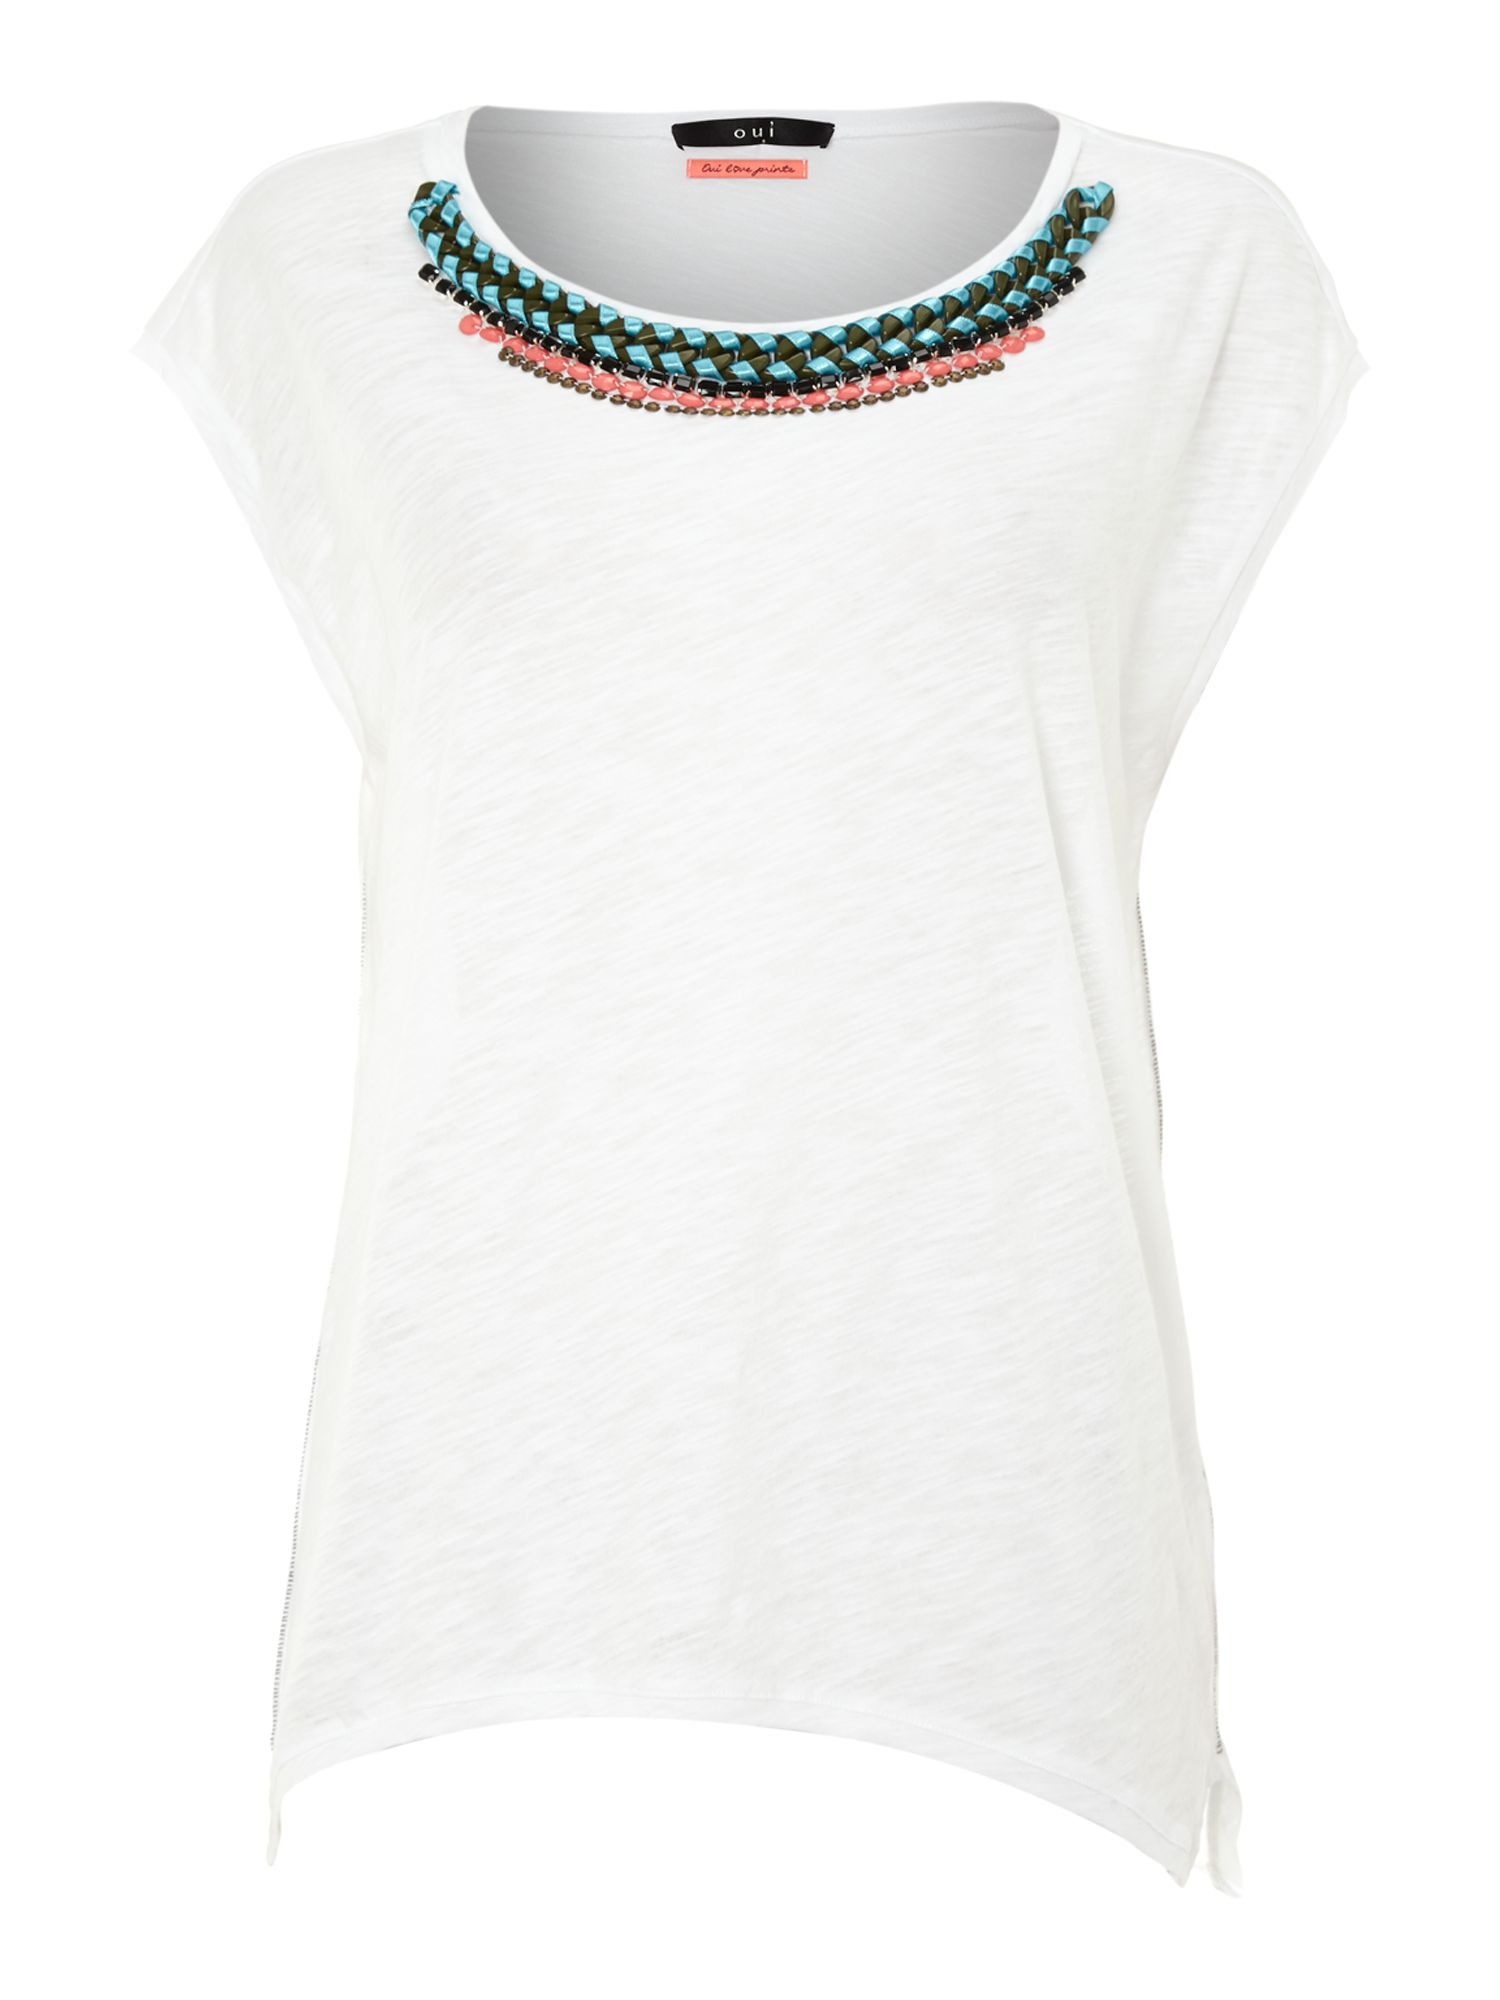 Printed top with beaded neckline